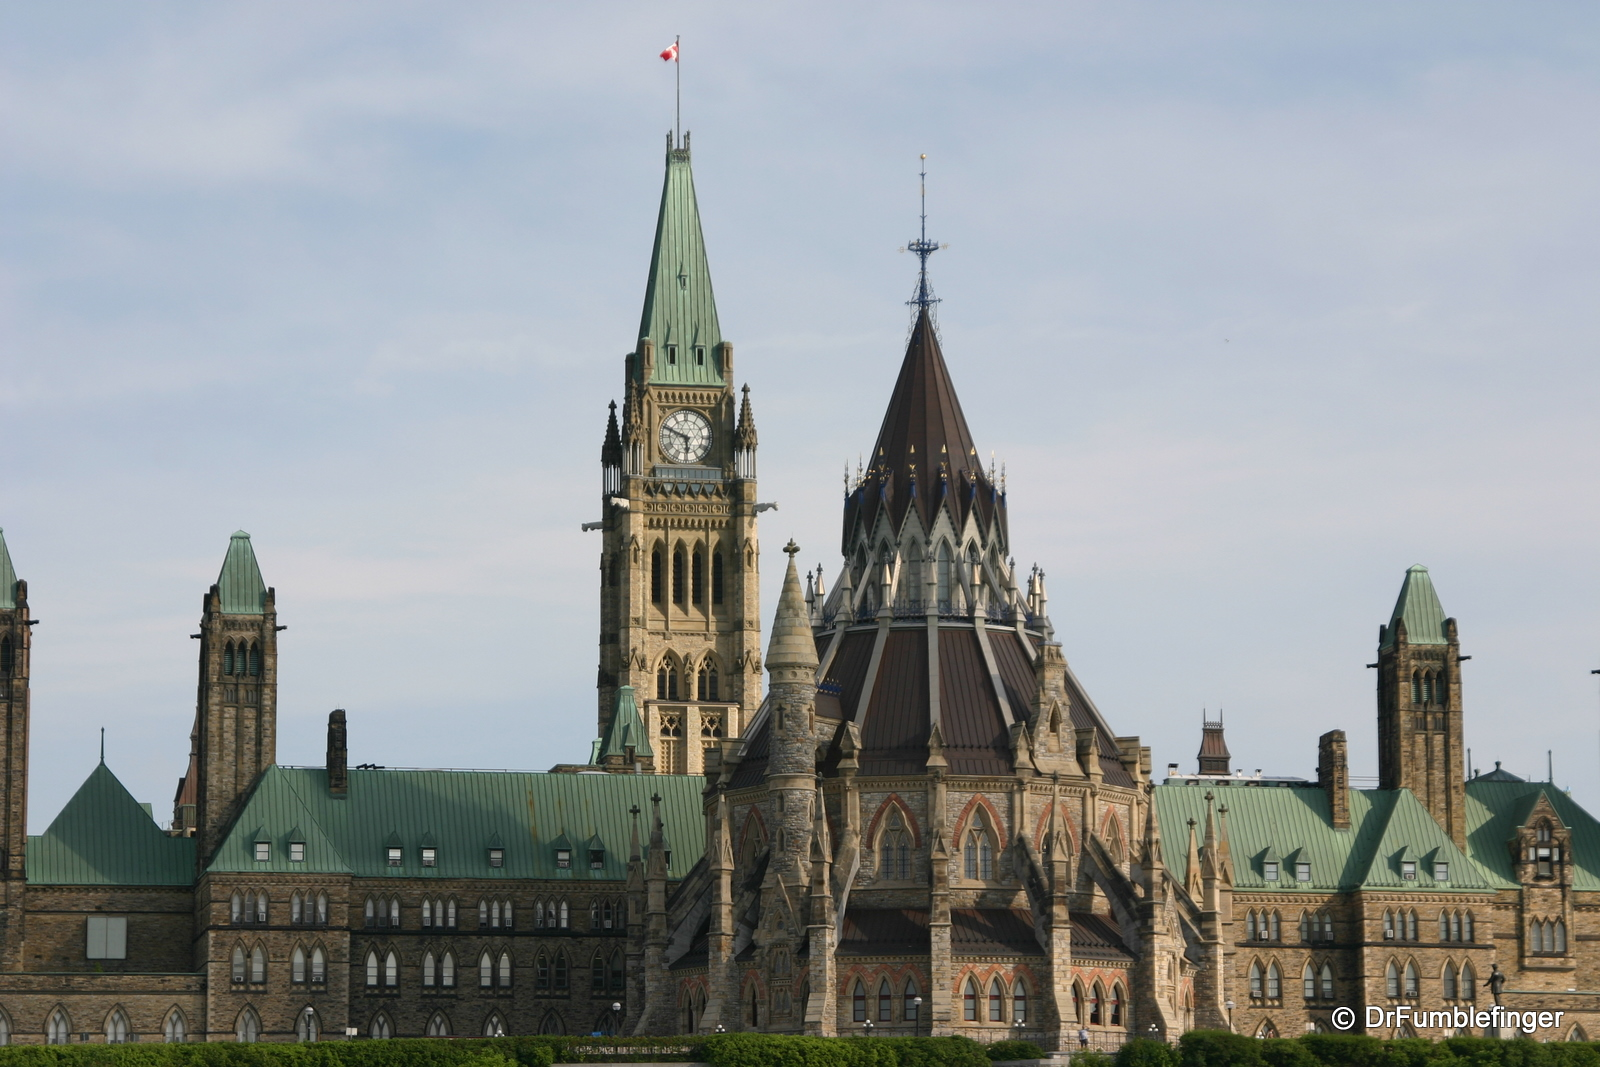 Parliament Hill, Ottawa. The Library is in the foreground.